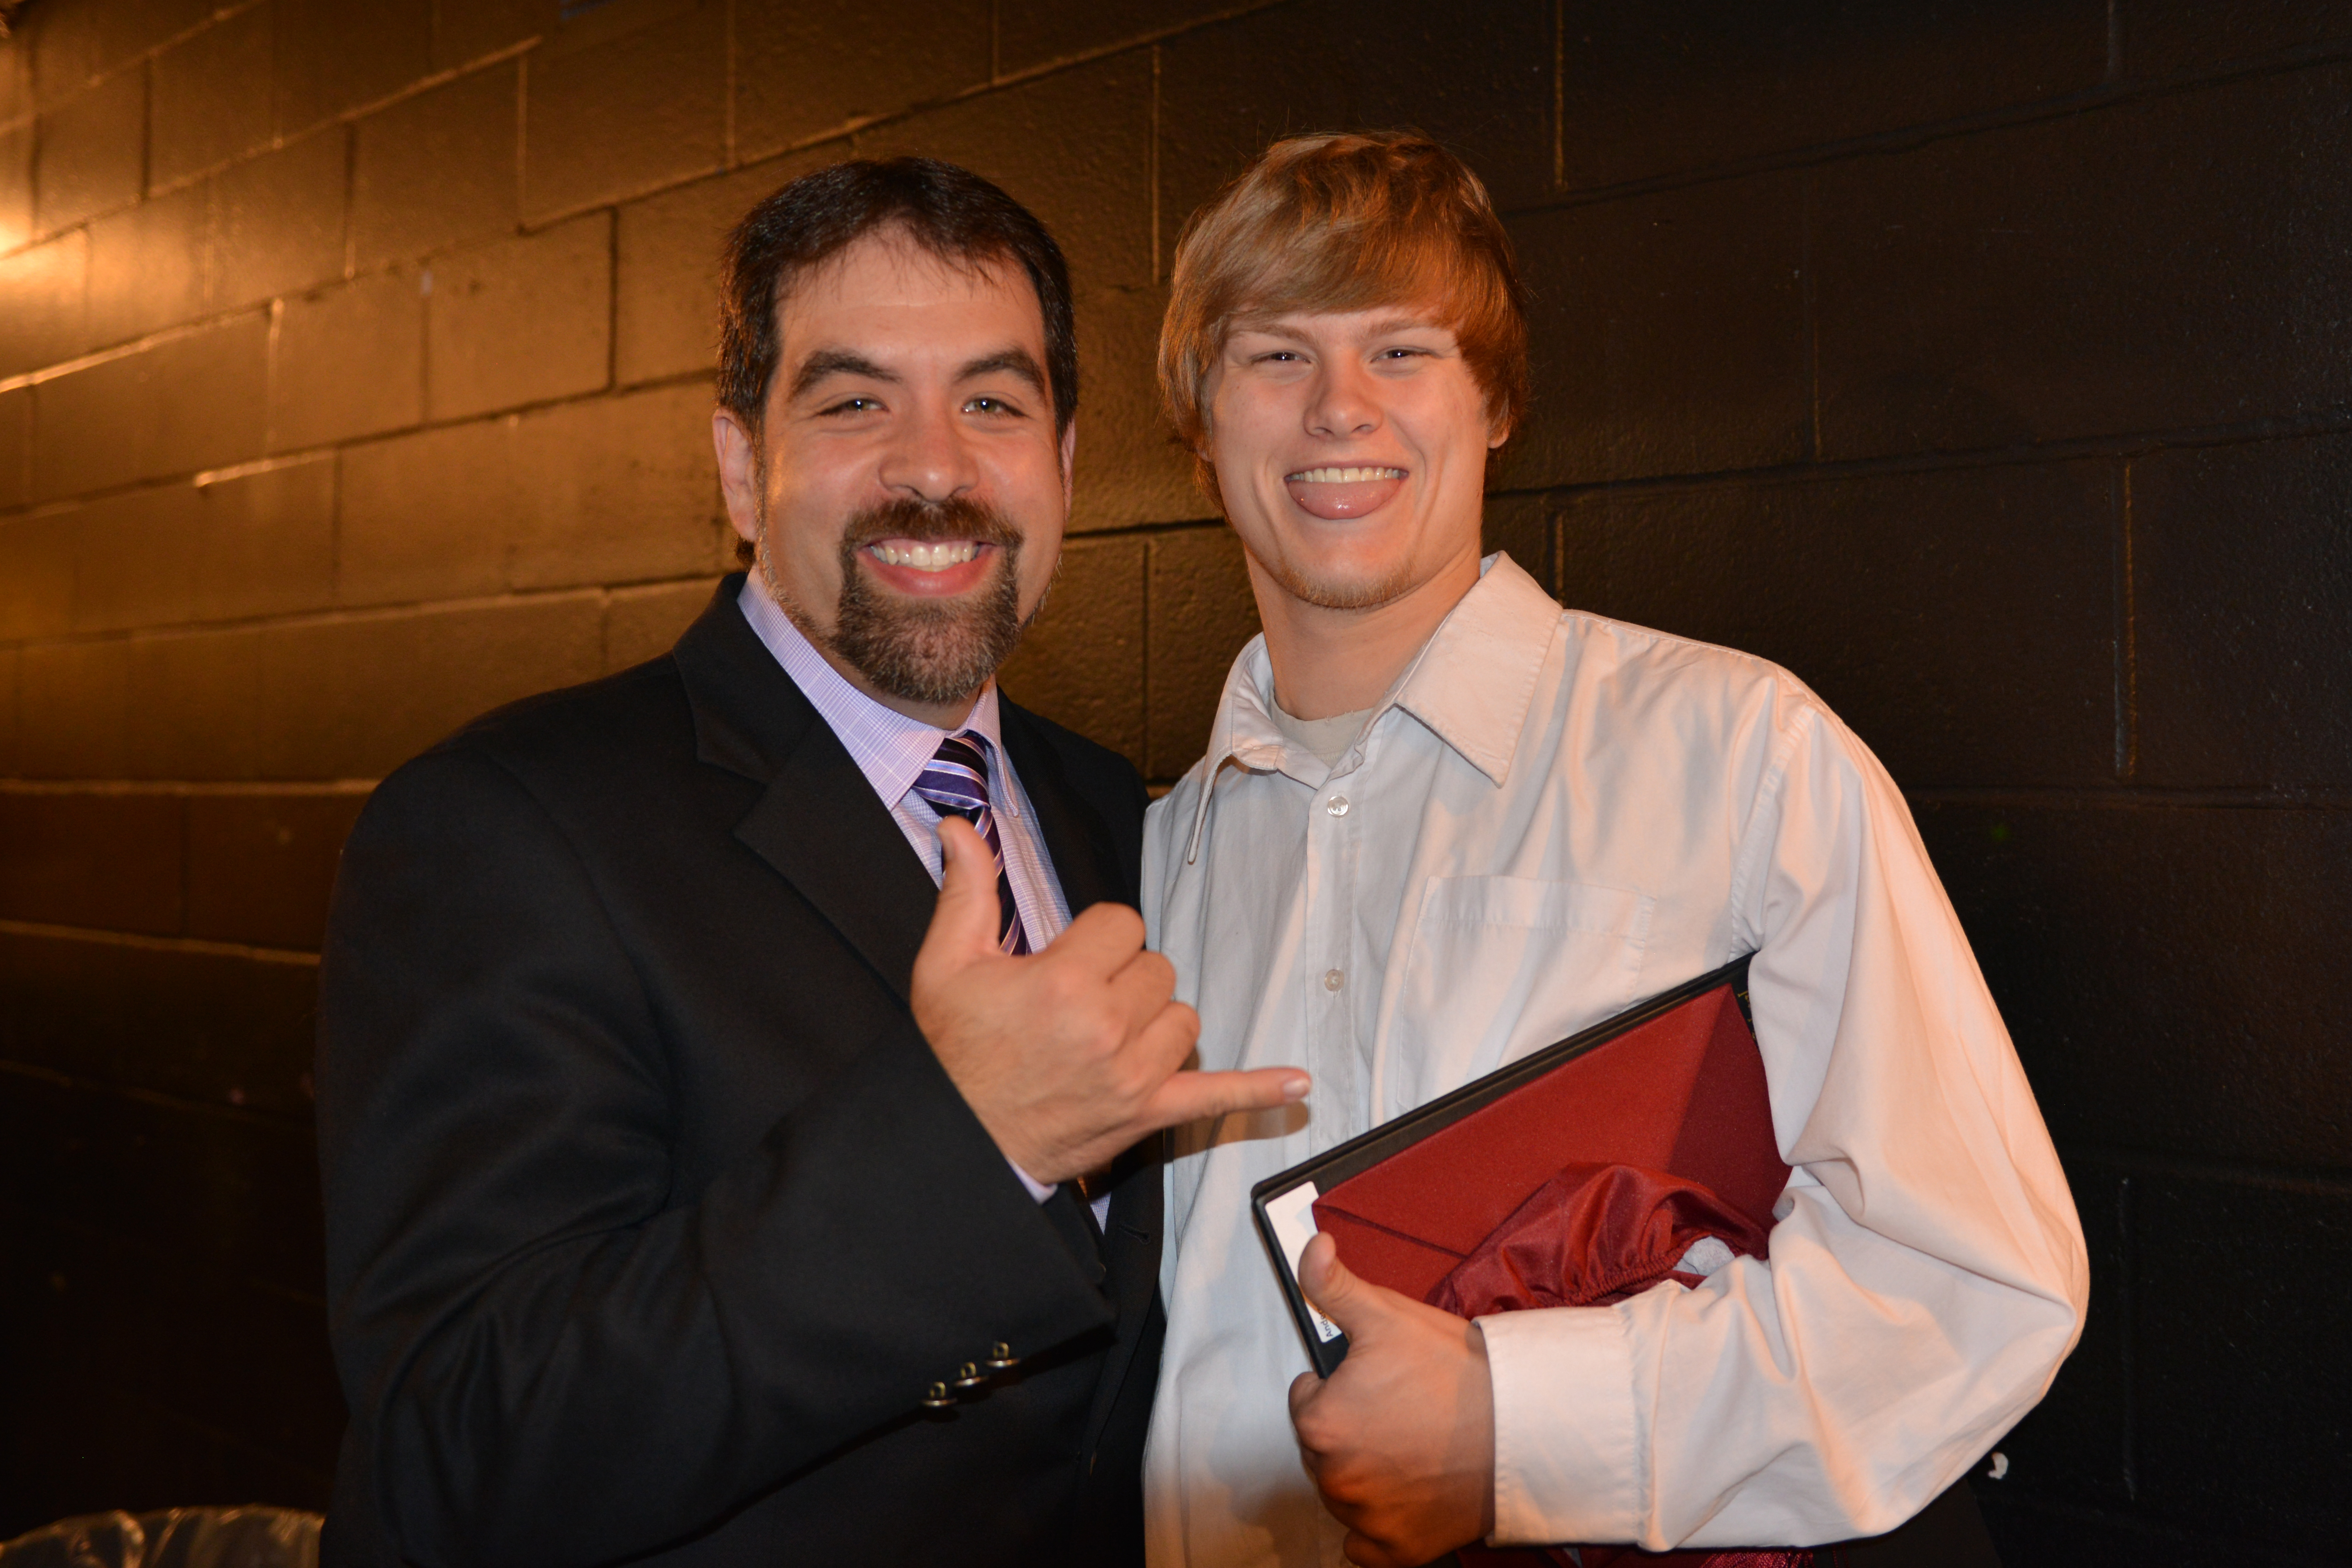 Brady Anderson with Dr. Isaacs at Waterdown Highschool 2013 graduation